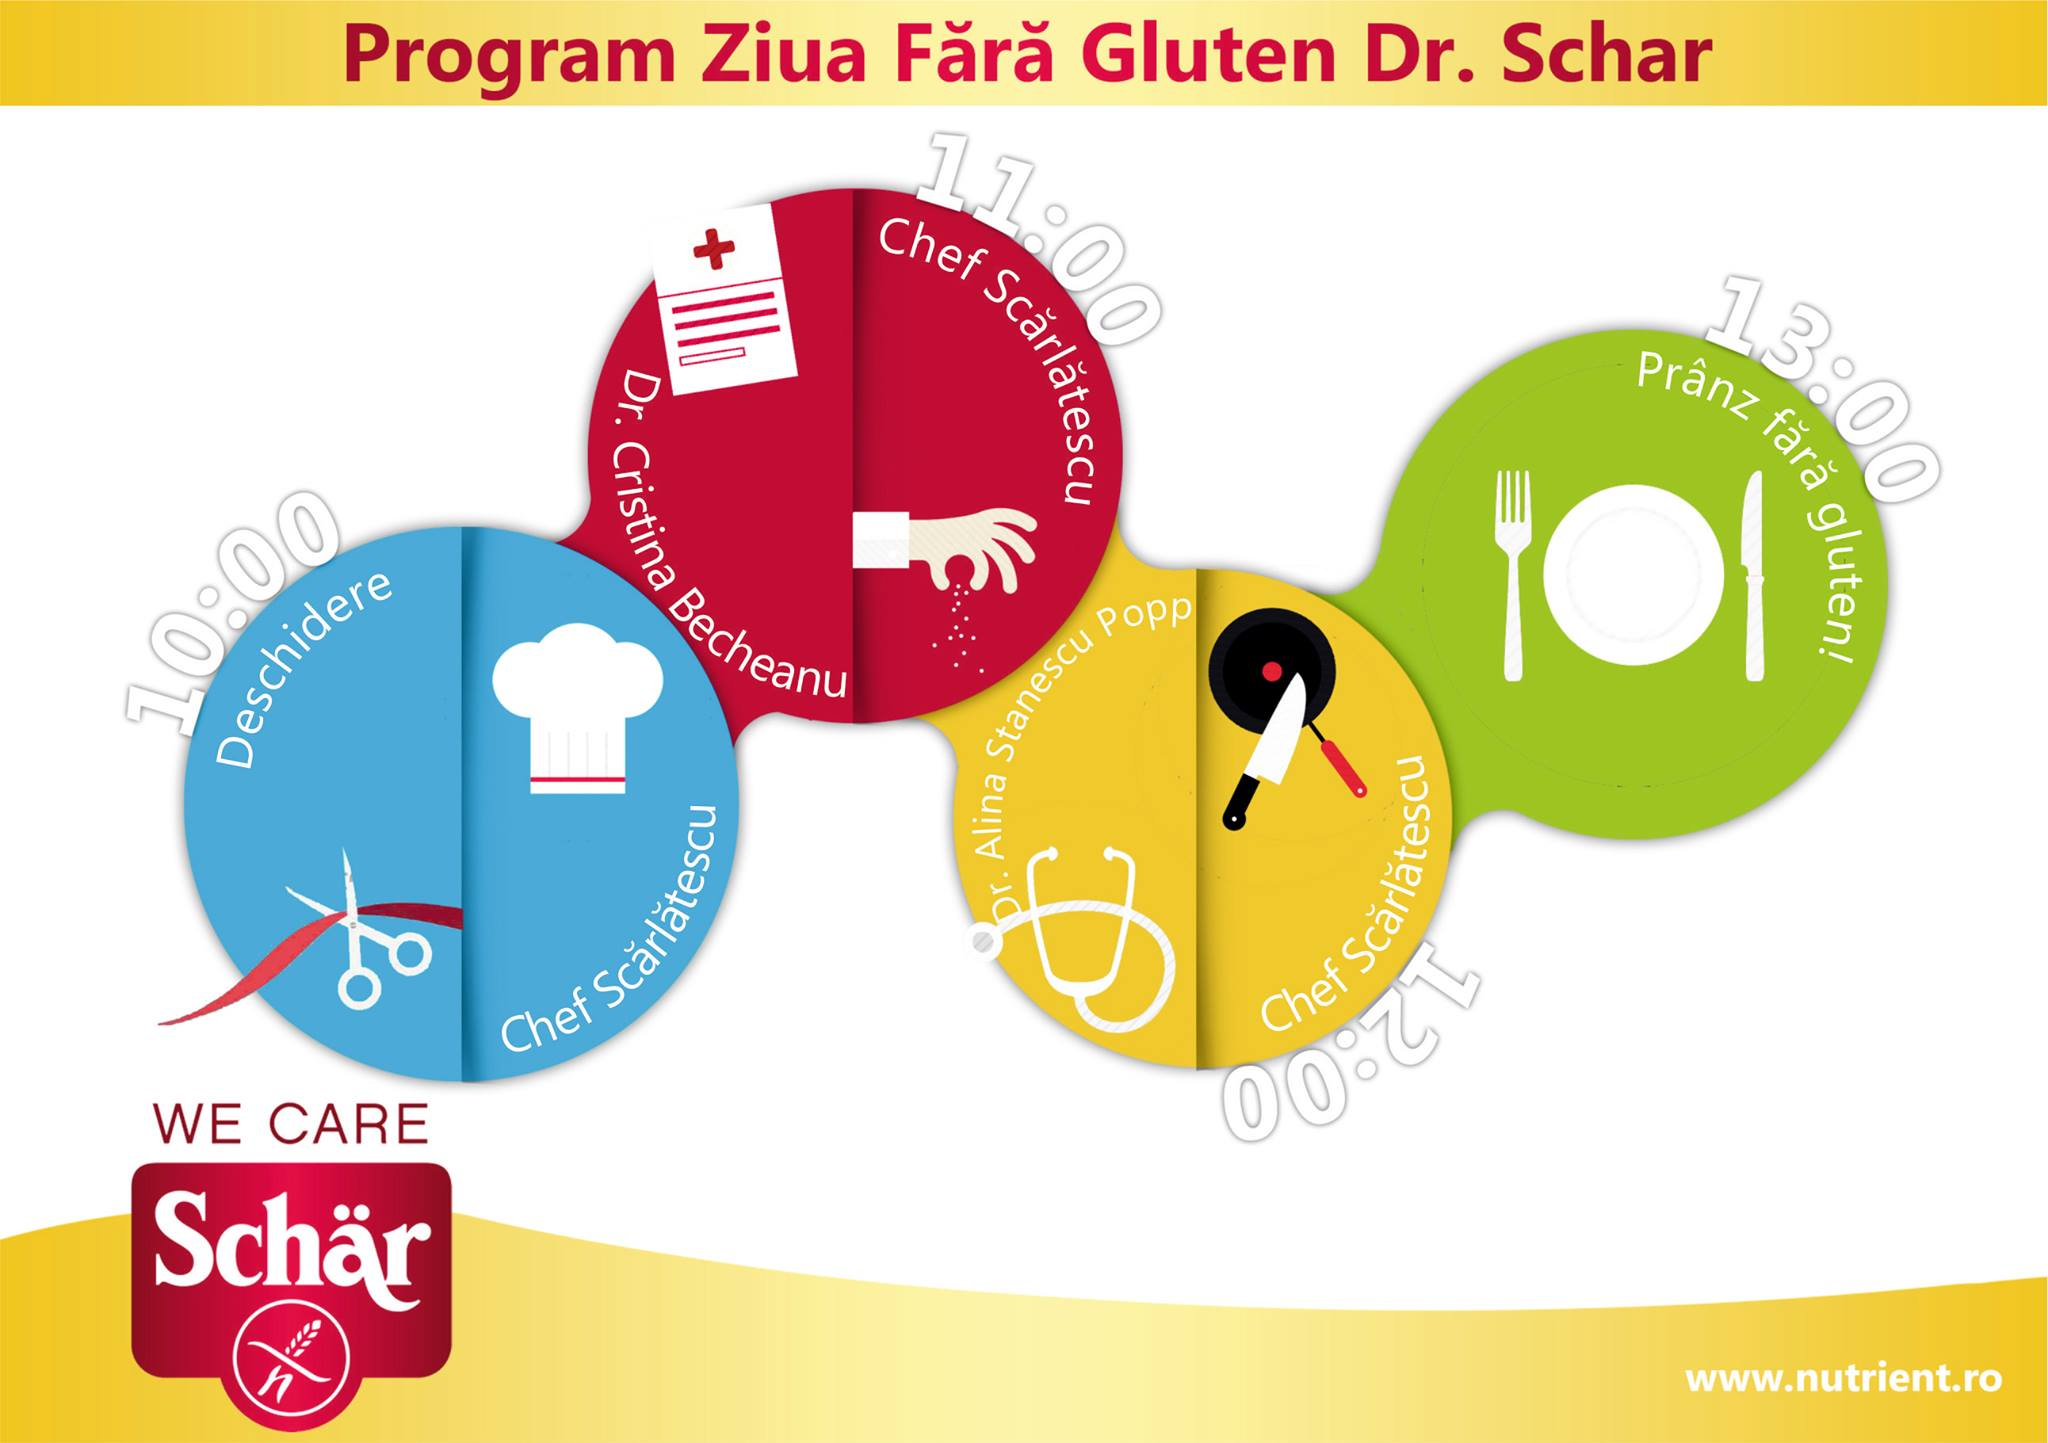 program invitatie ziua fara gluten schar